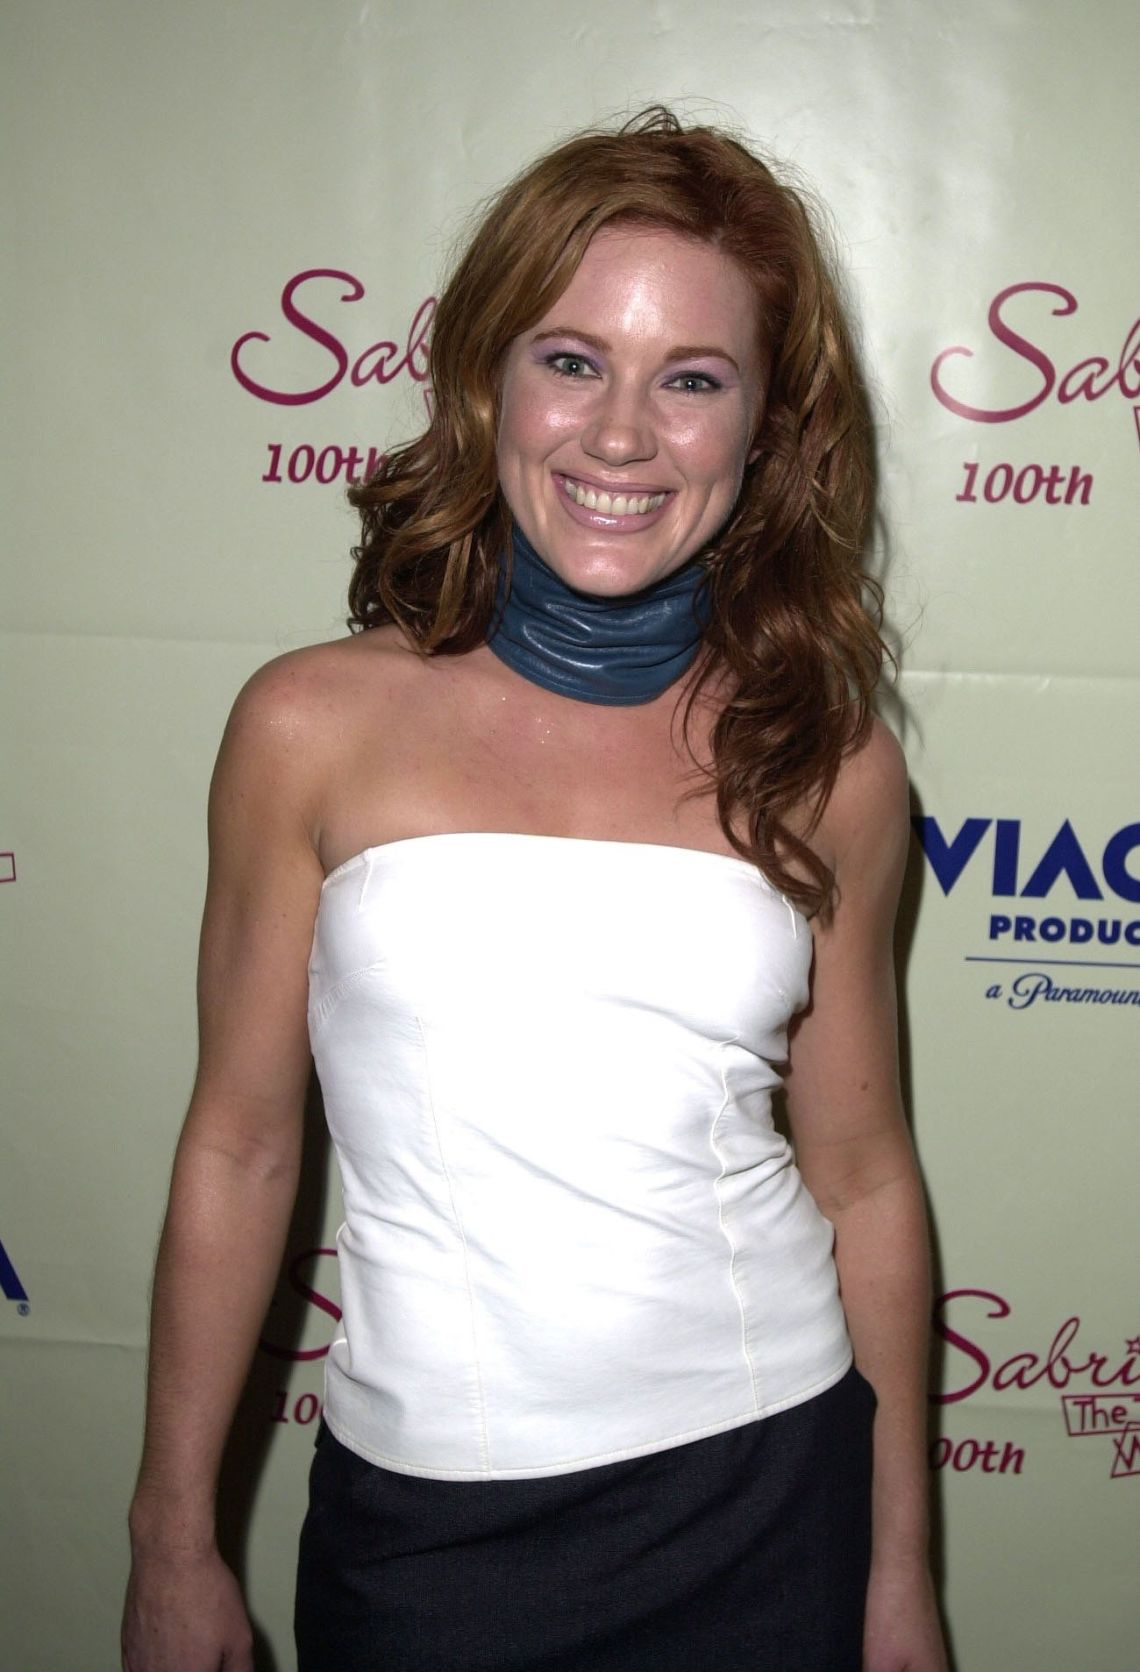 Morgan was one of Sabrina's college roommates, who was introduced in the fifth season, and also dated Harvey and Josh.